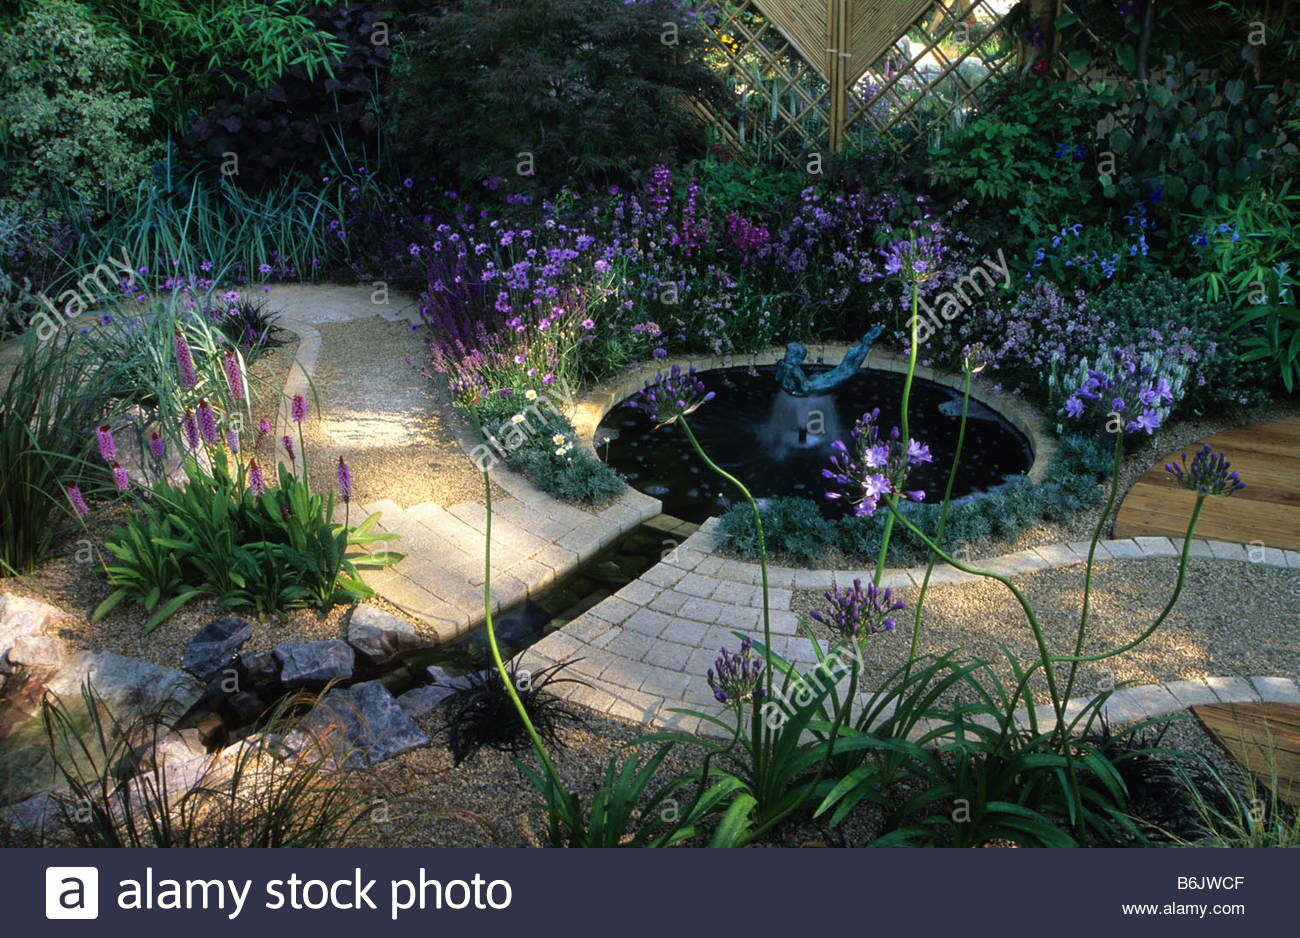 feng shui garden design Pamela Woods formal circular pool